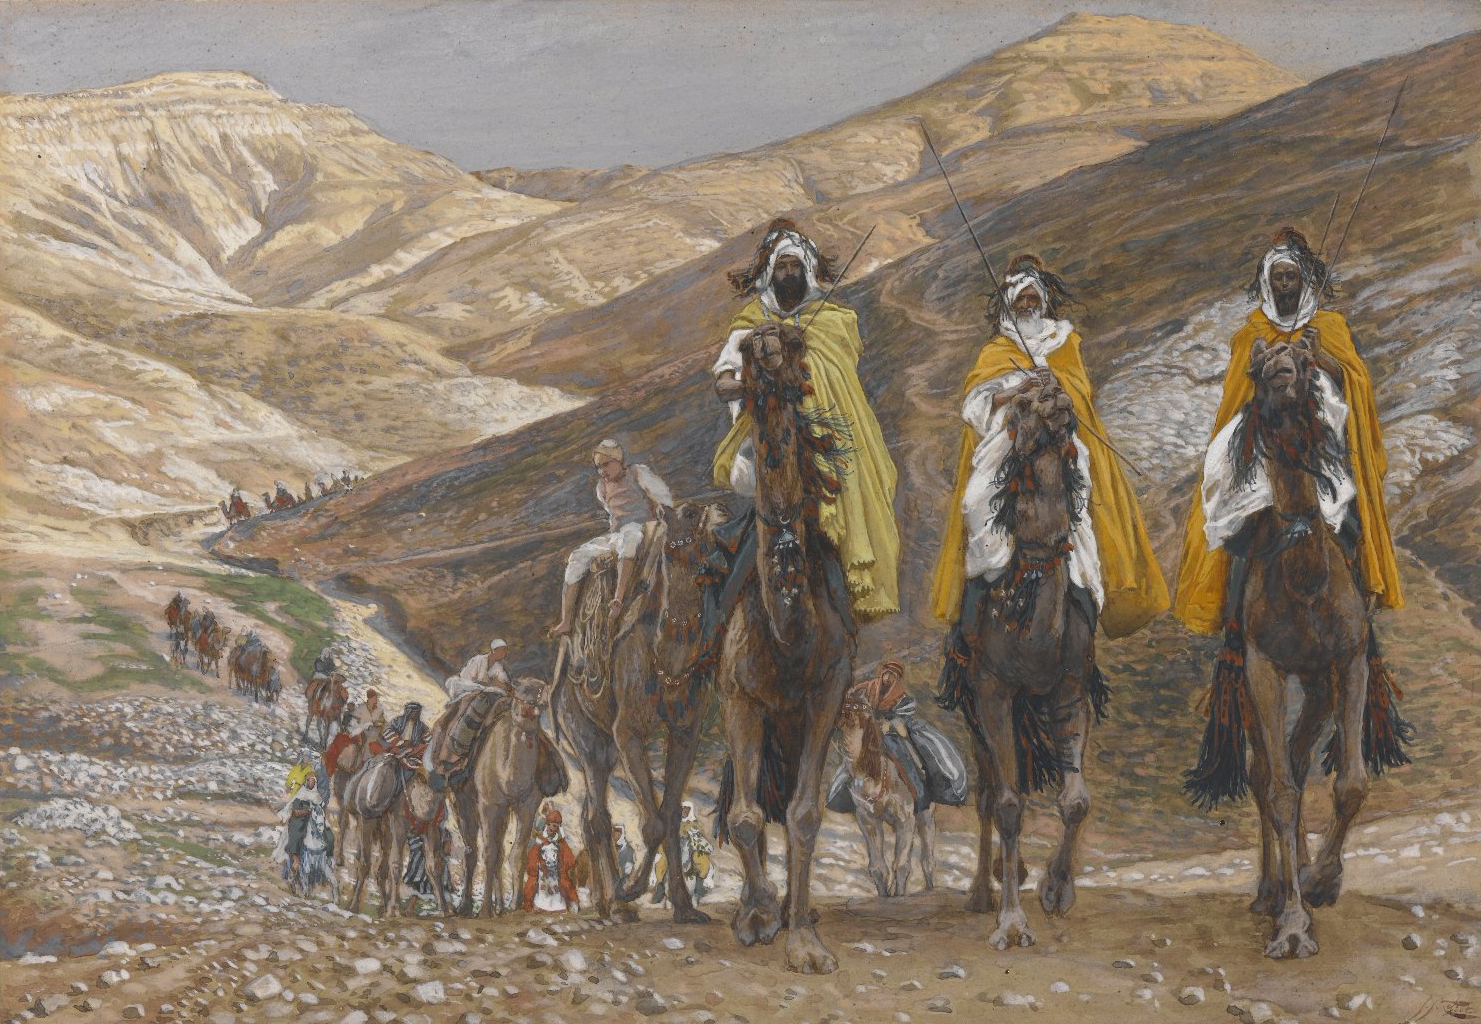 The Magi Journeying by James Tissot, circa 1890. Brooklyn Museum, New York NY